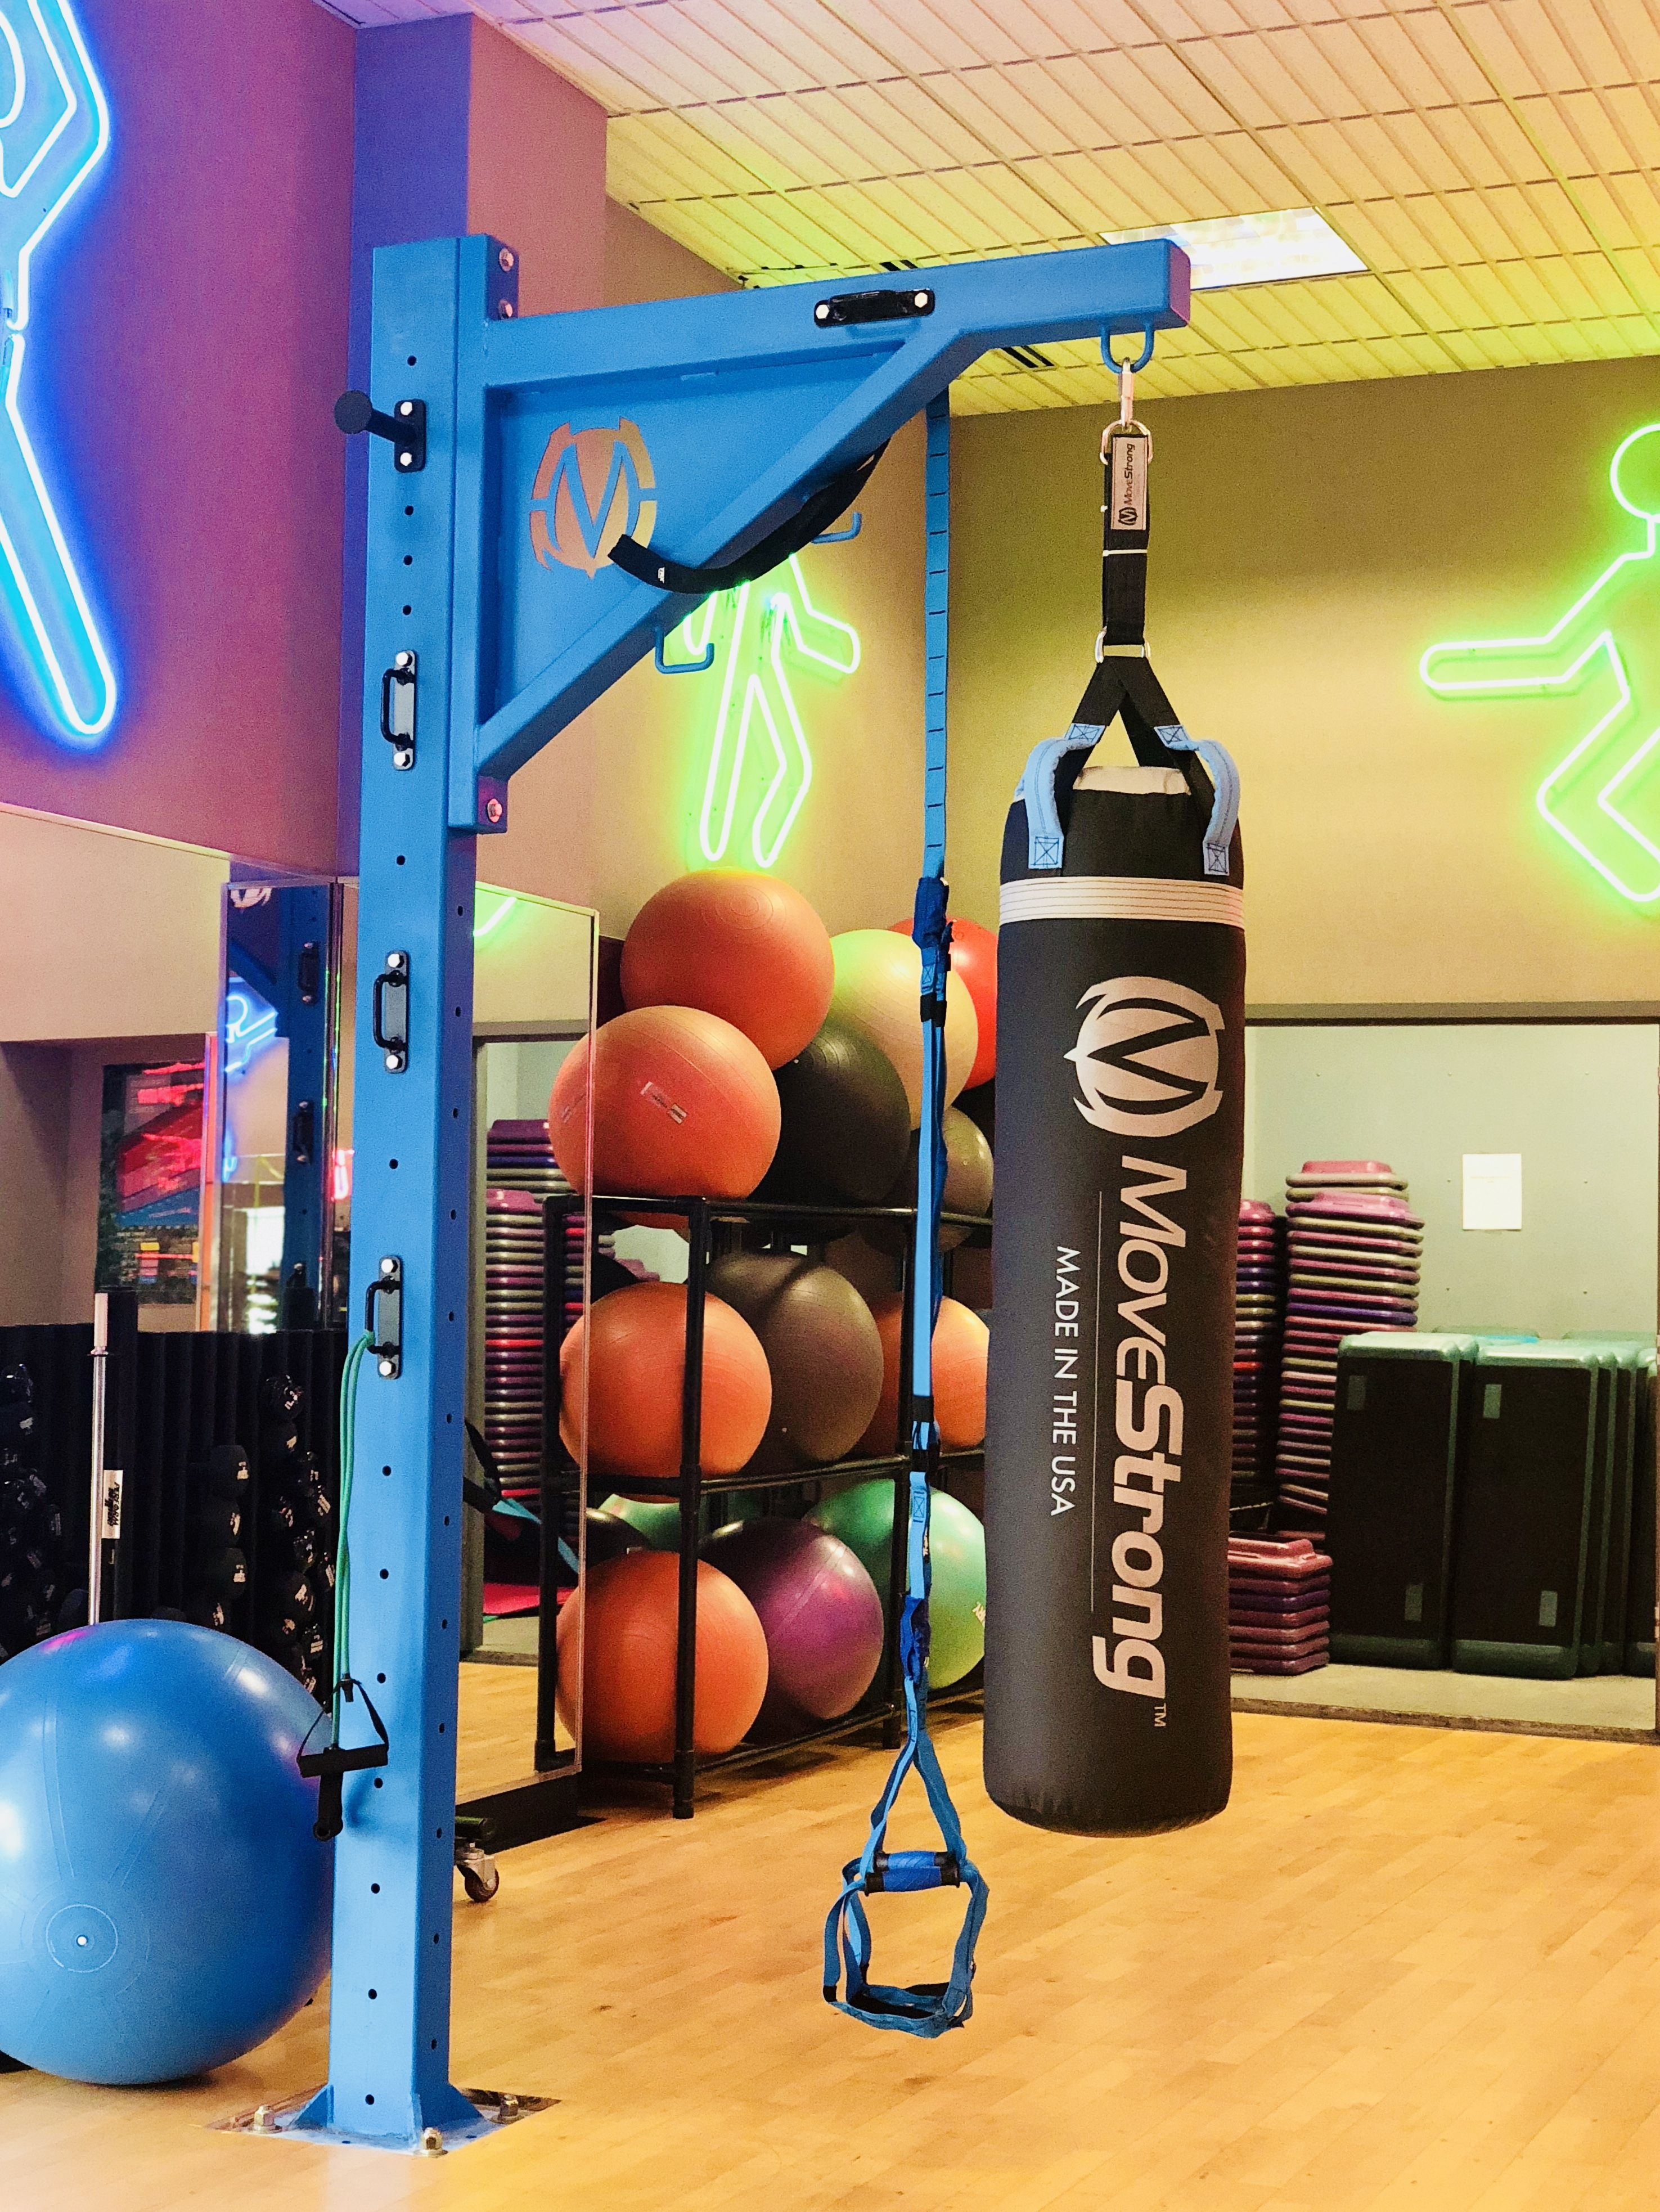 List accommodating resistance equipment for throwing